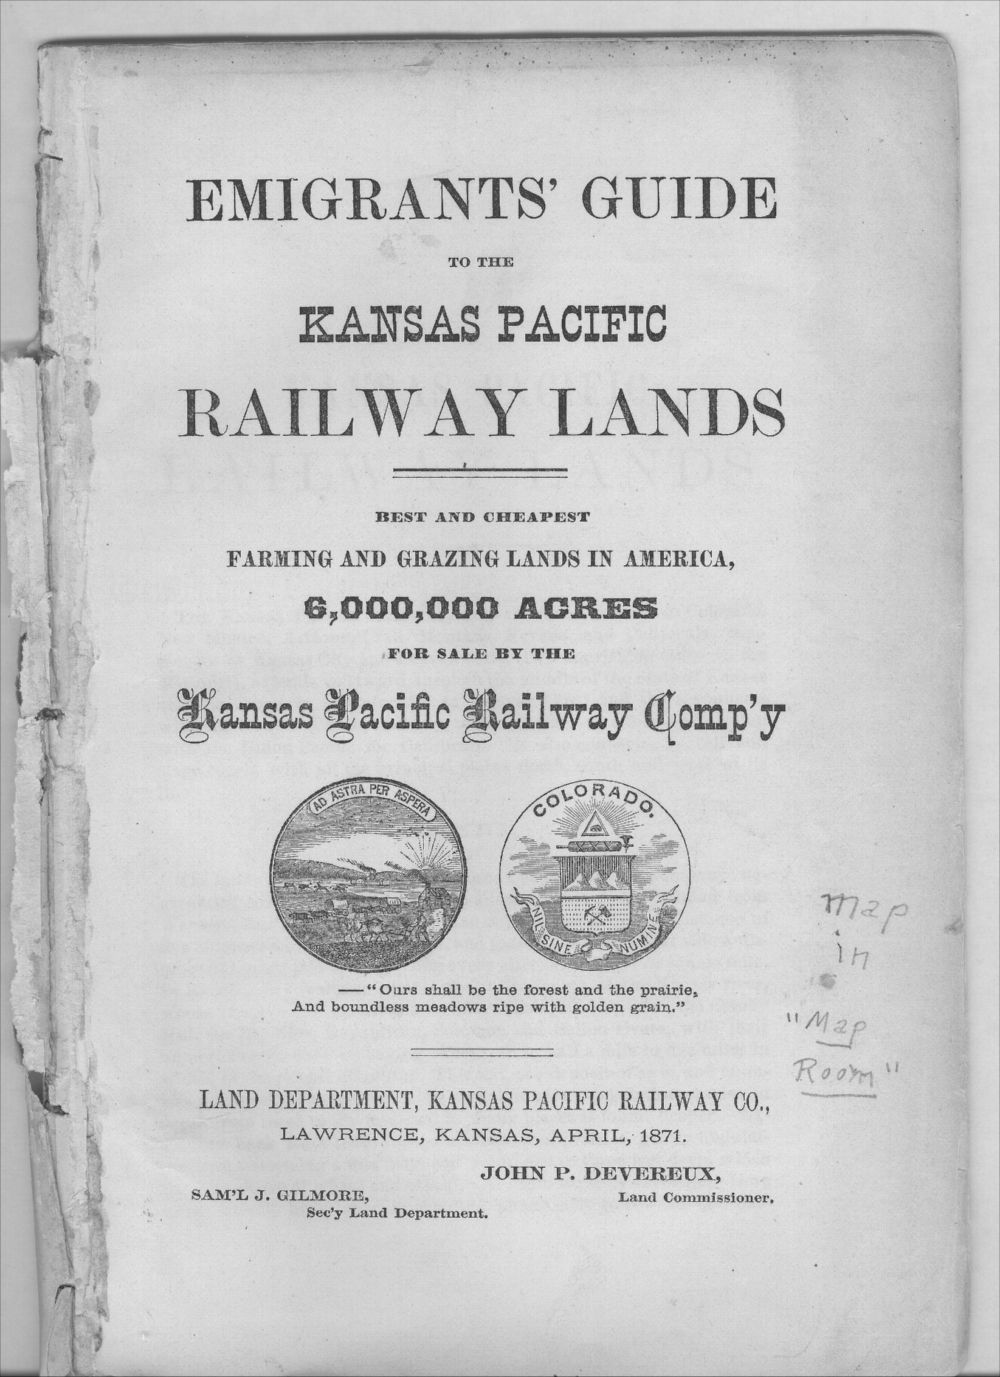 Emigrants' guide to the Kansas Pacific Railway lands - Title Page